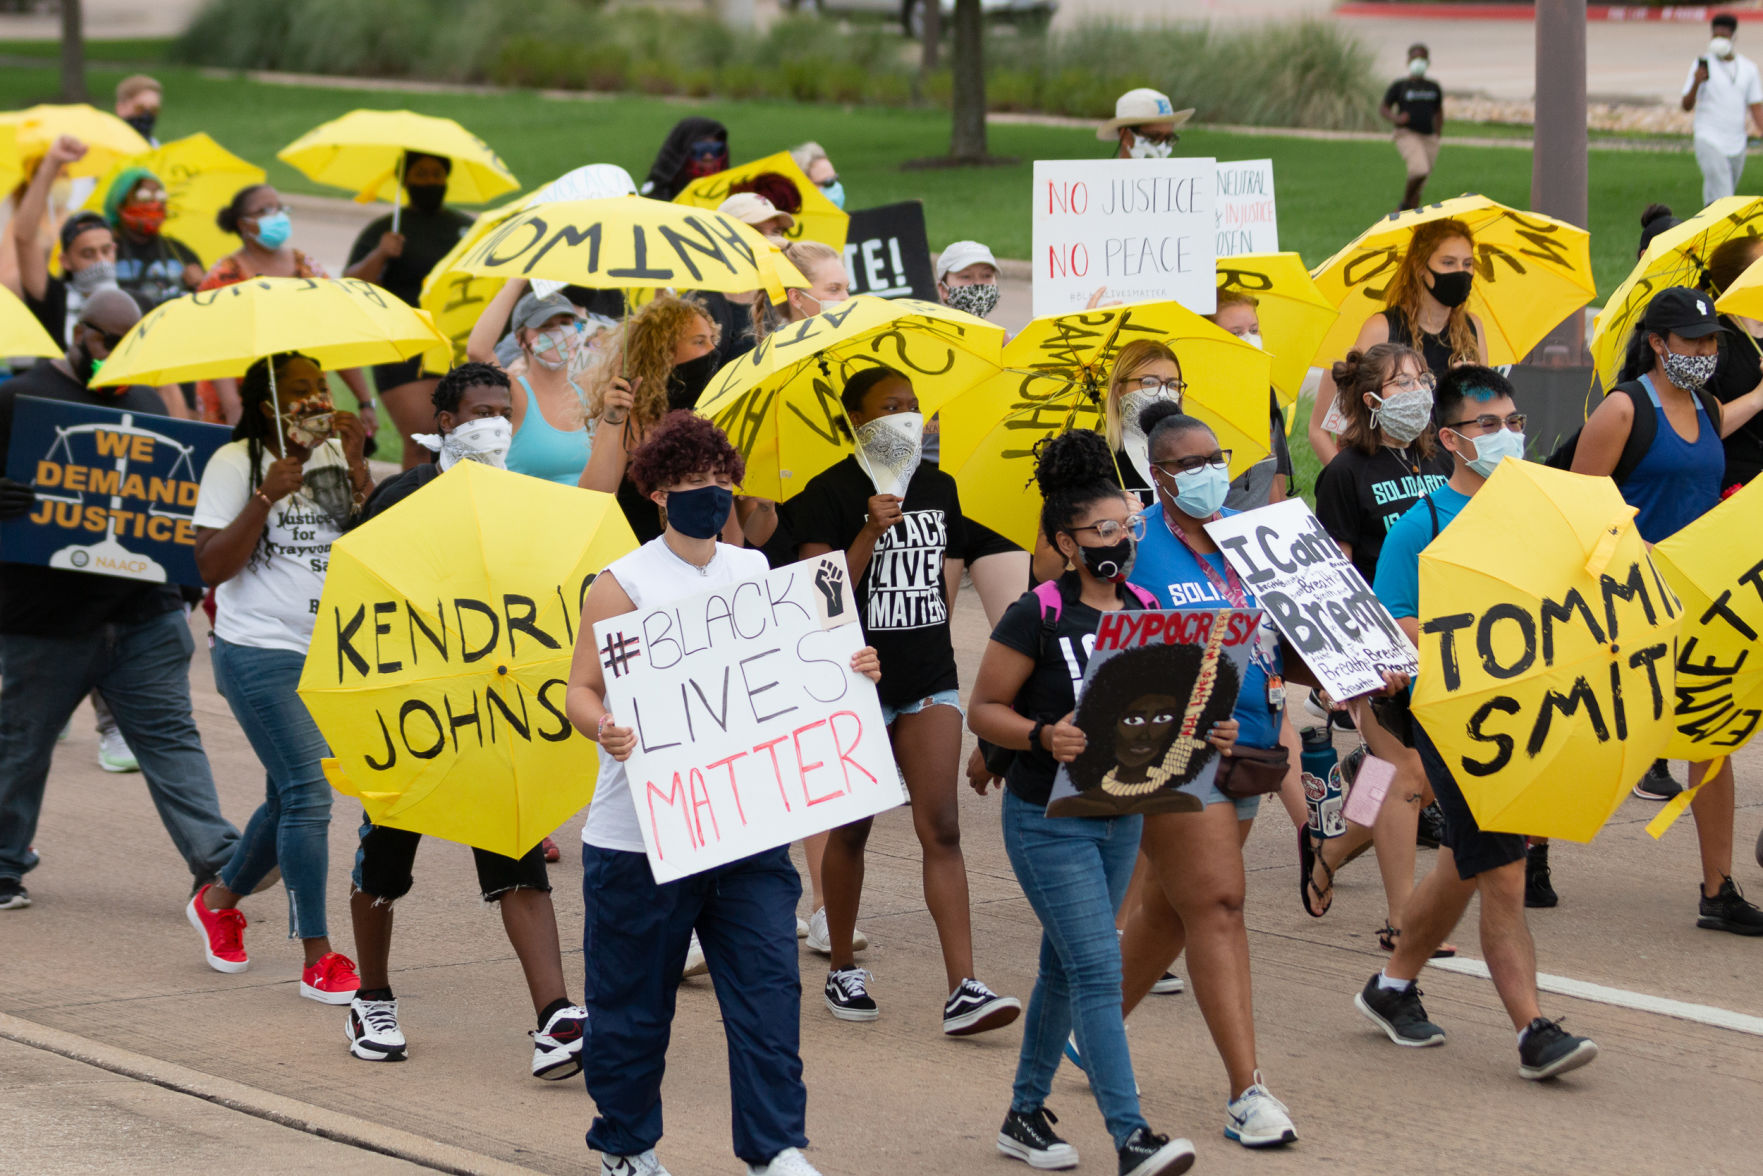 Arlington youth march with yellow umbrellas in remembrance of police brutality victims